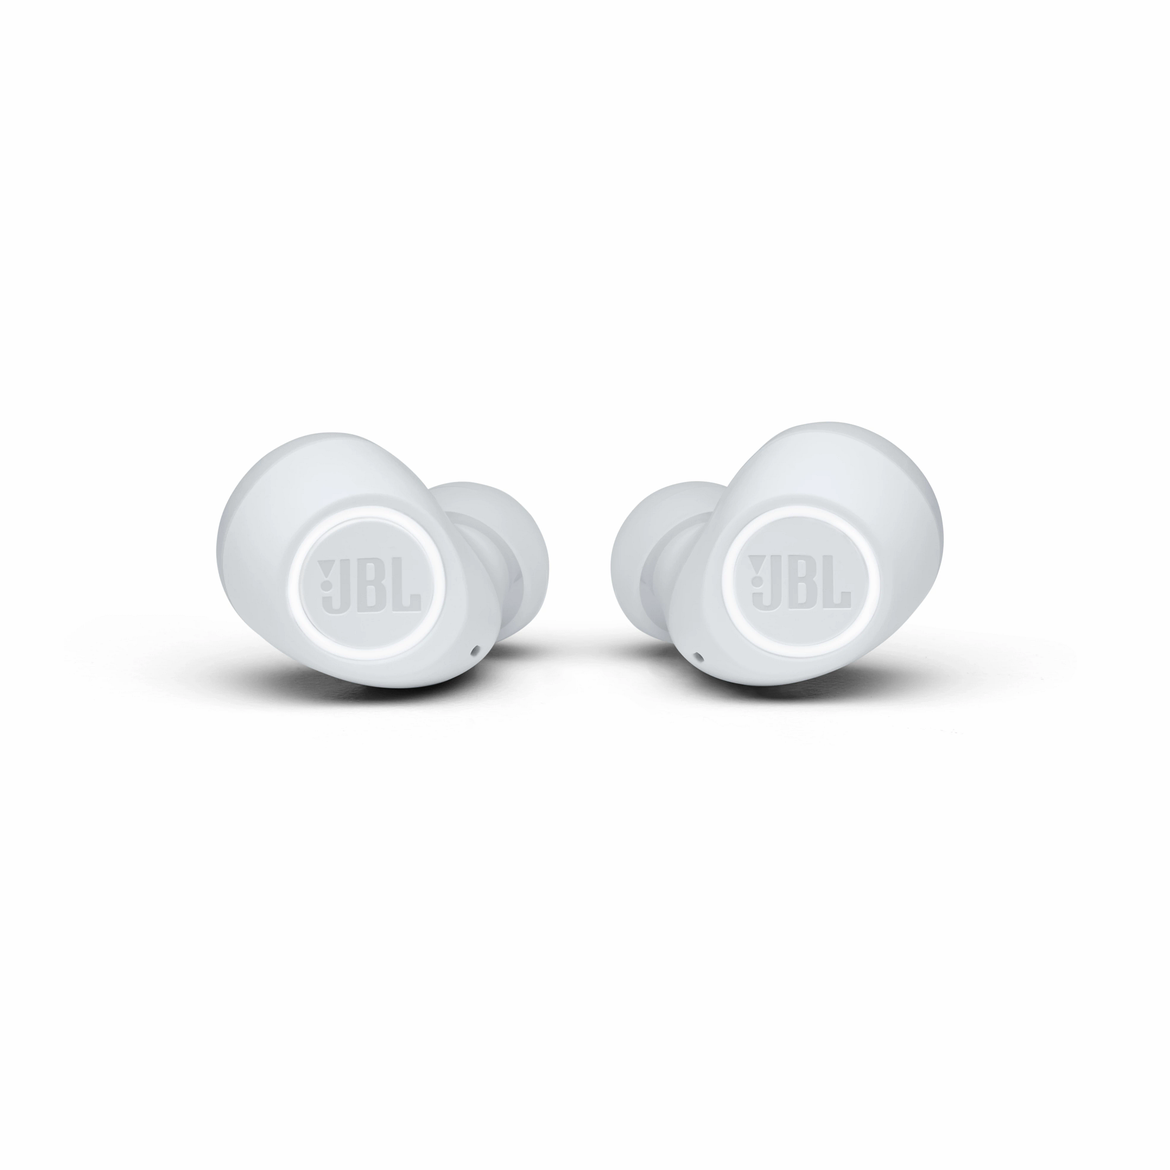 JBL_FREE_II_Product image_Front_White